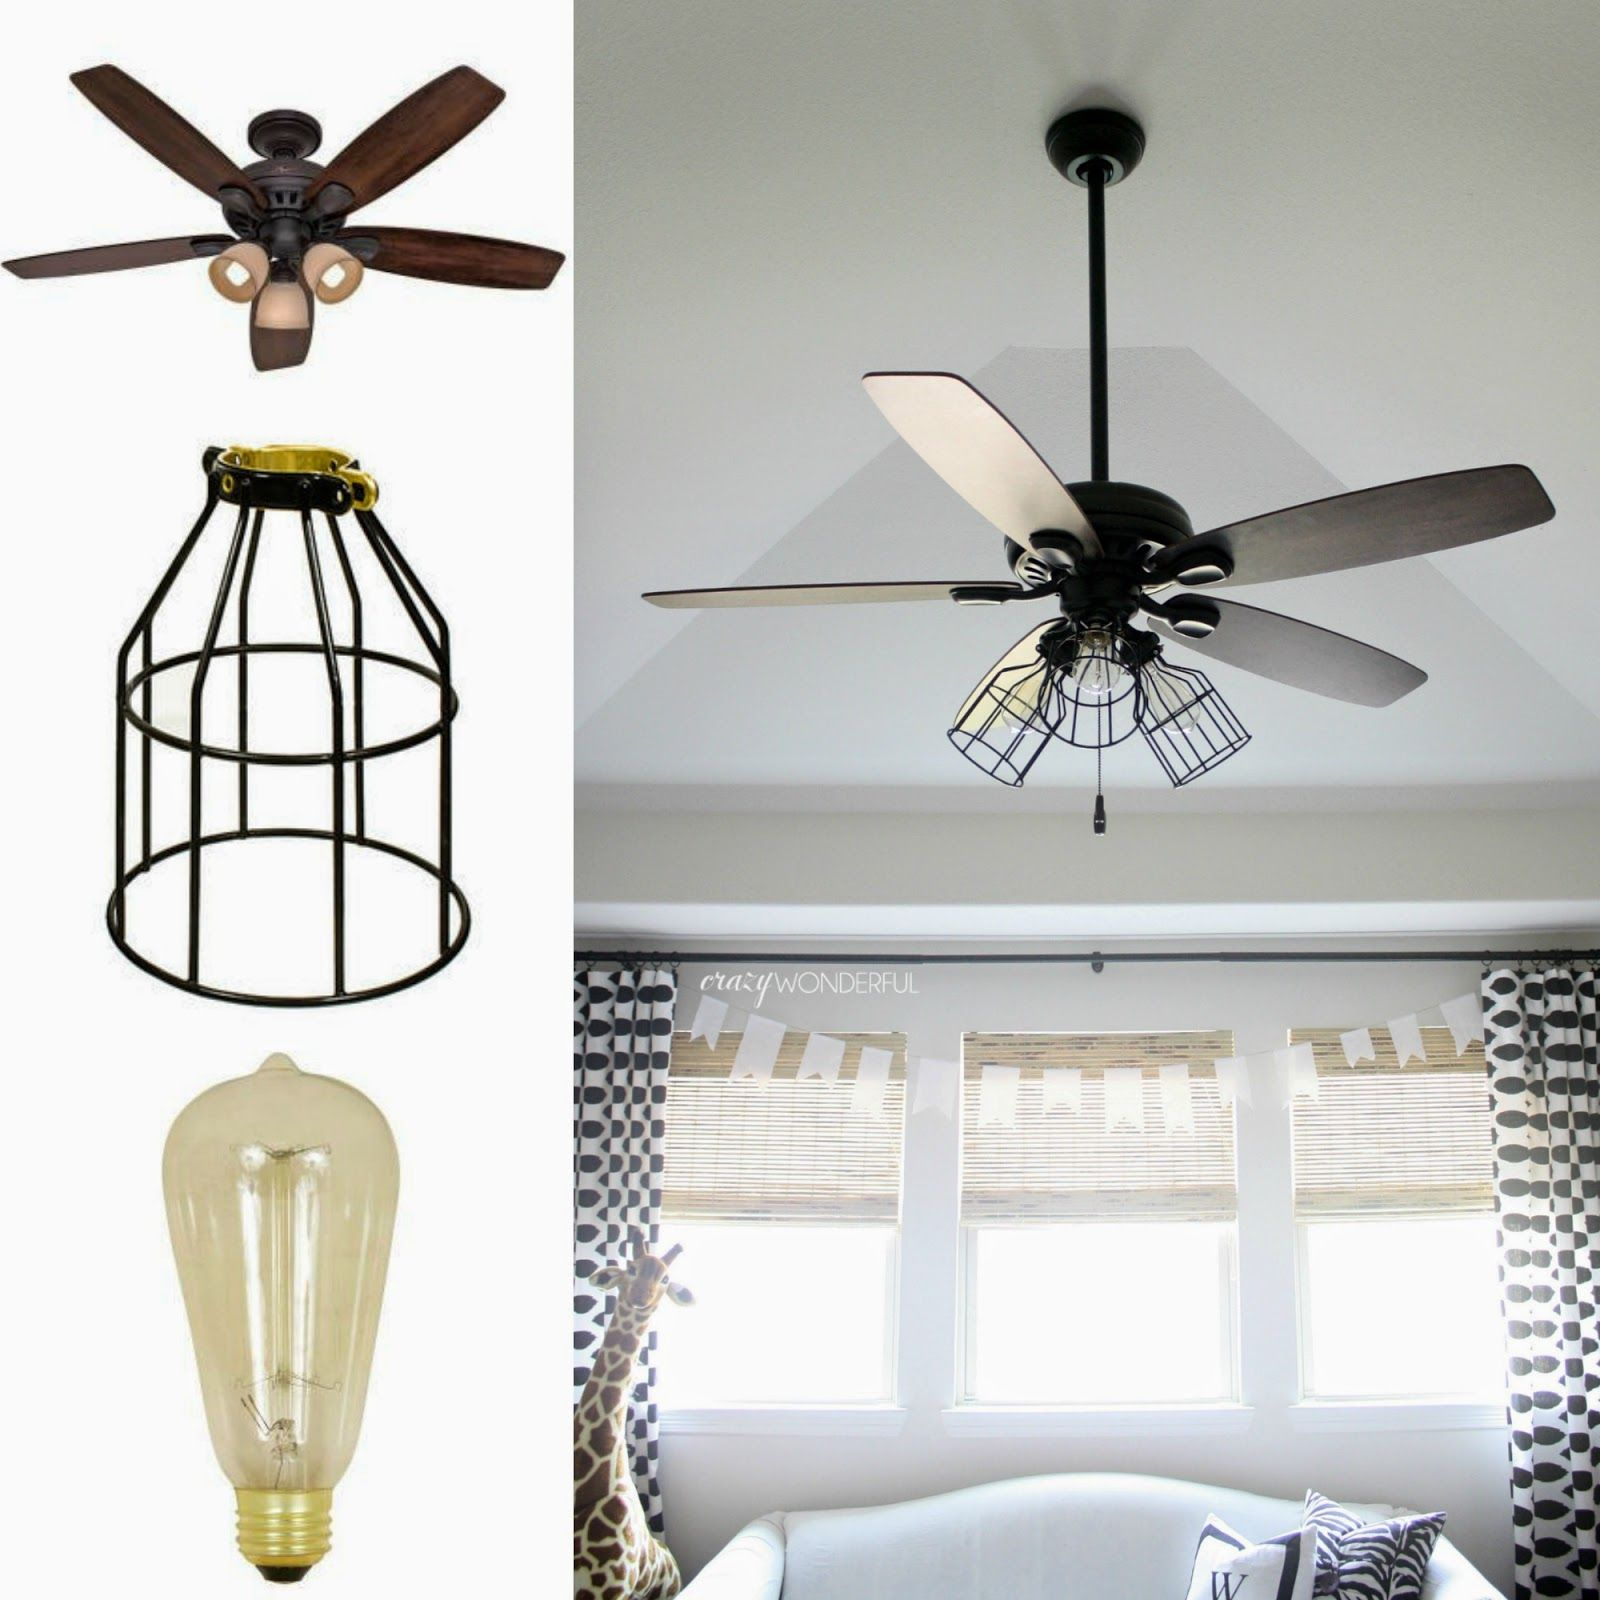 Bathroom Lights Make Me Look Ugly crazy wonderful: diy cage light ceiling fan